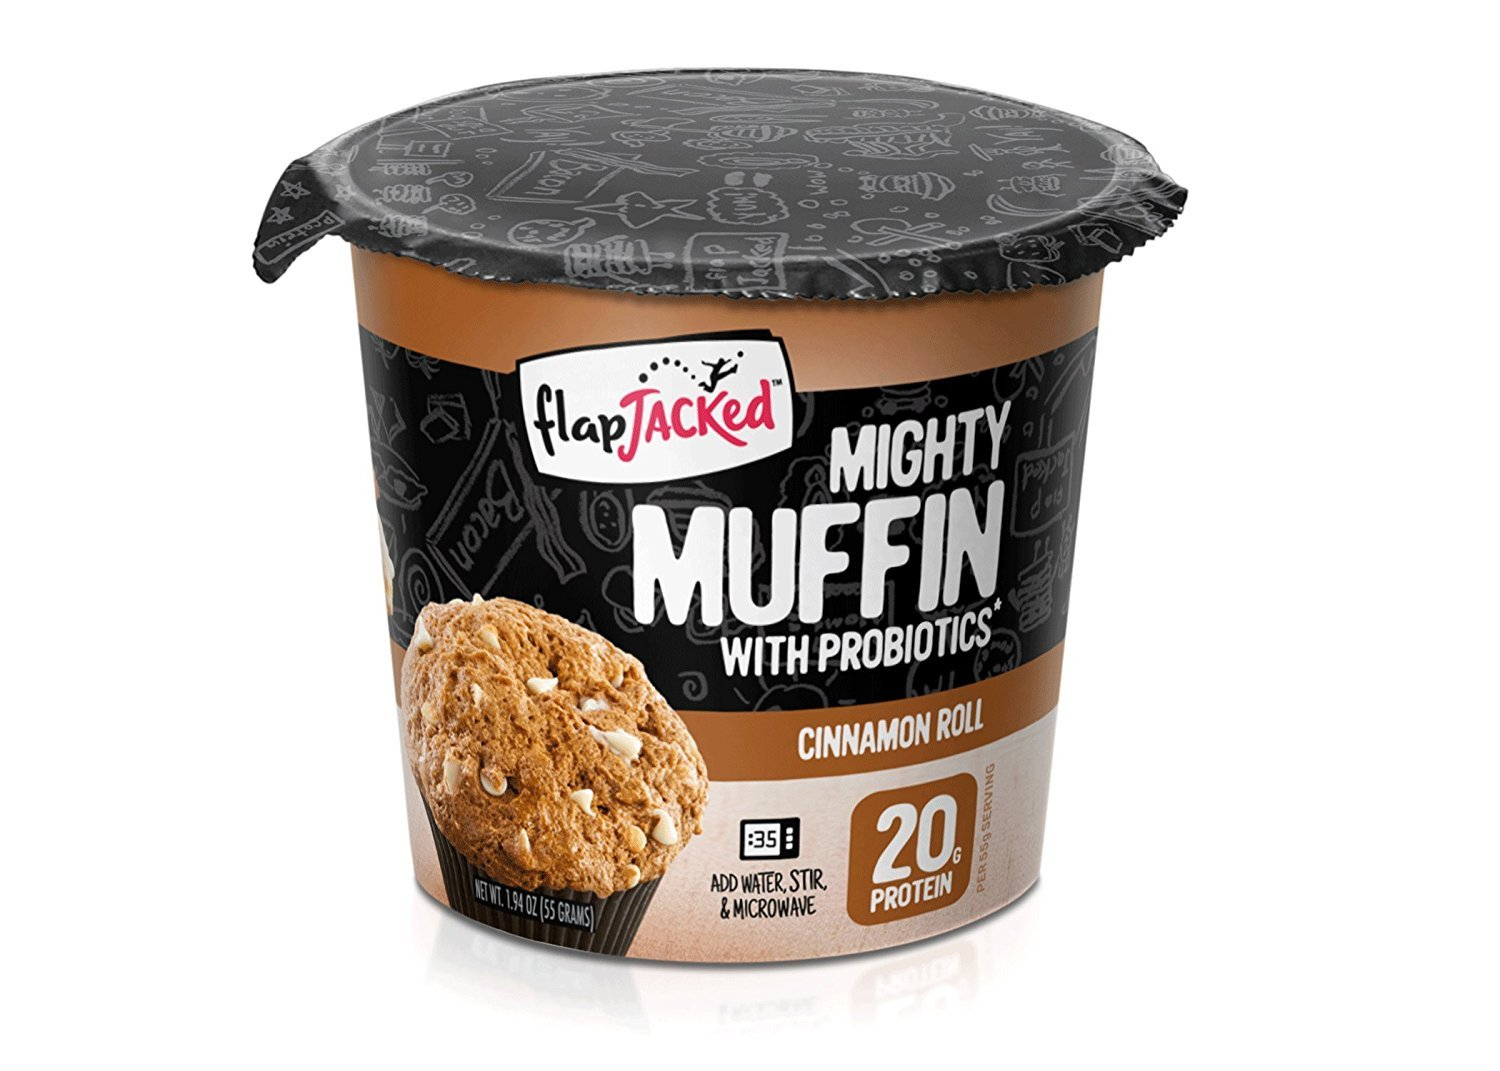 FlapJacked Mighty Muffins, Cinnamon Roll, 6 Pack by FlapJacked (Image #2)